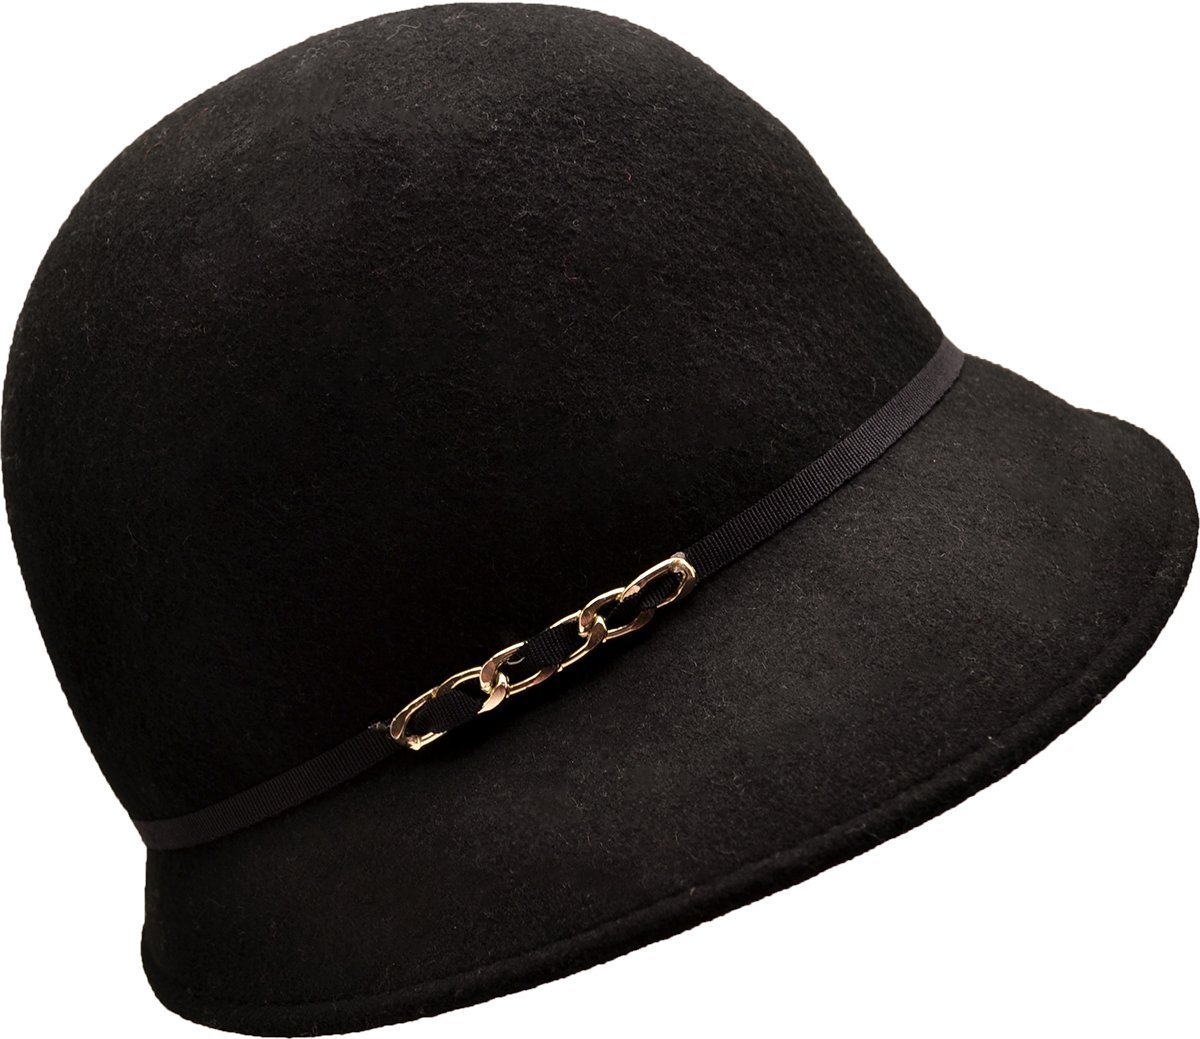 0d4c6dd320a Get Quotations · August Accessories Womens Black Bucket Hat